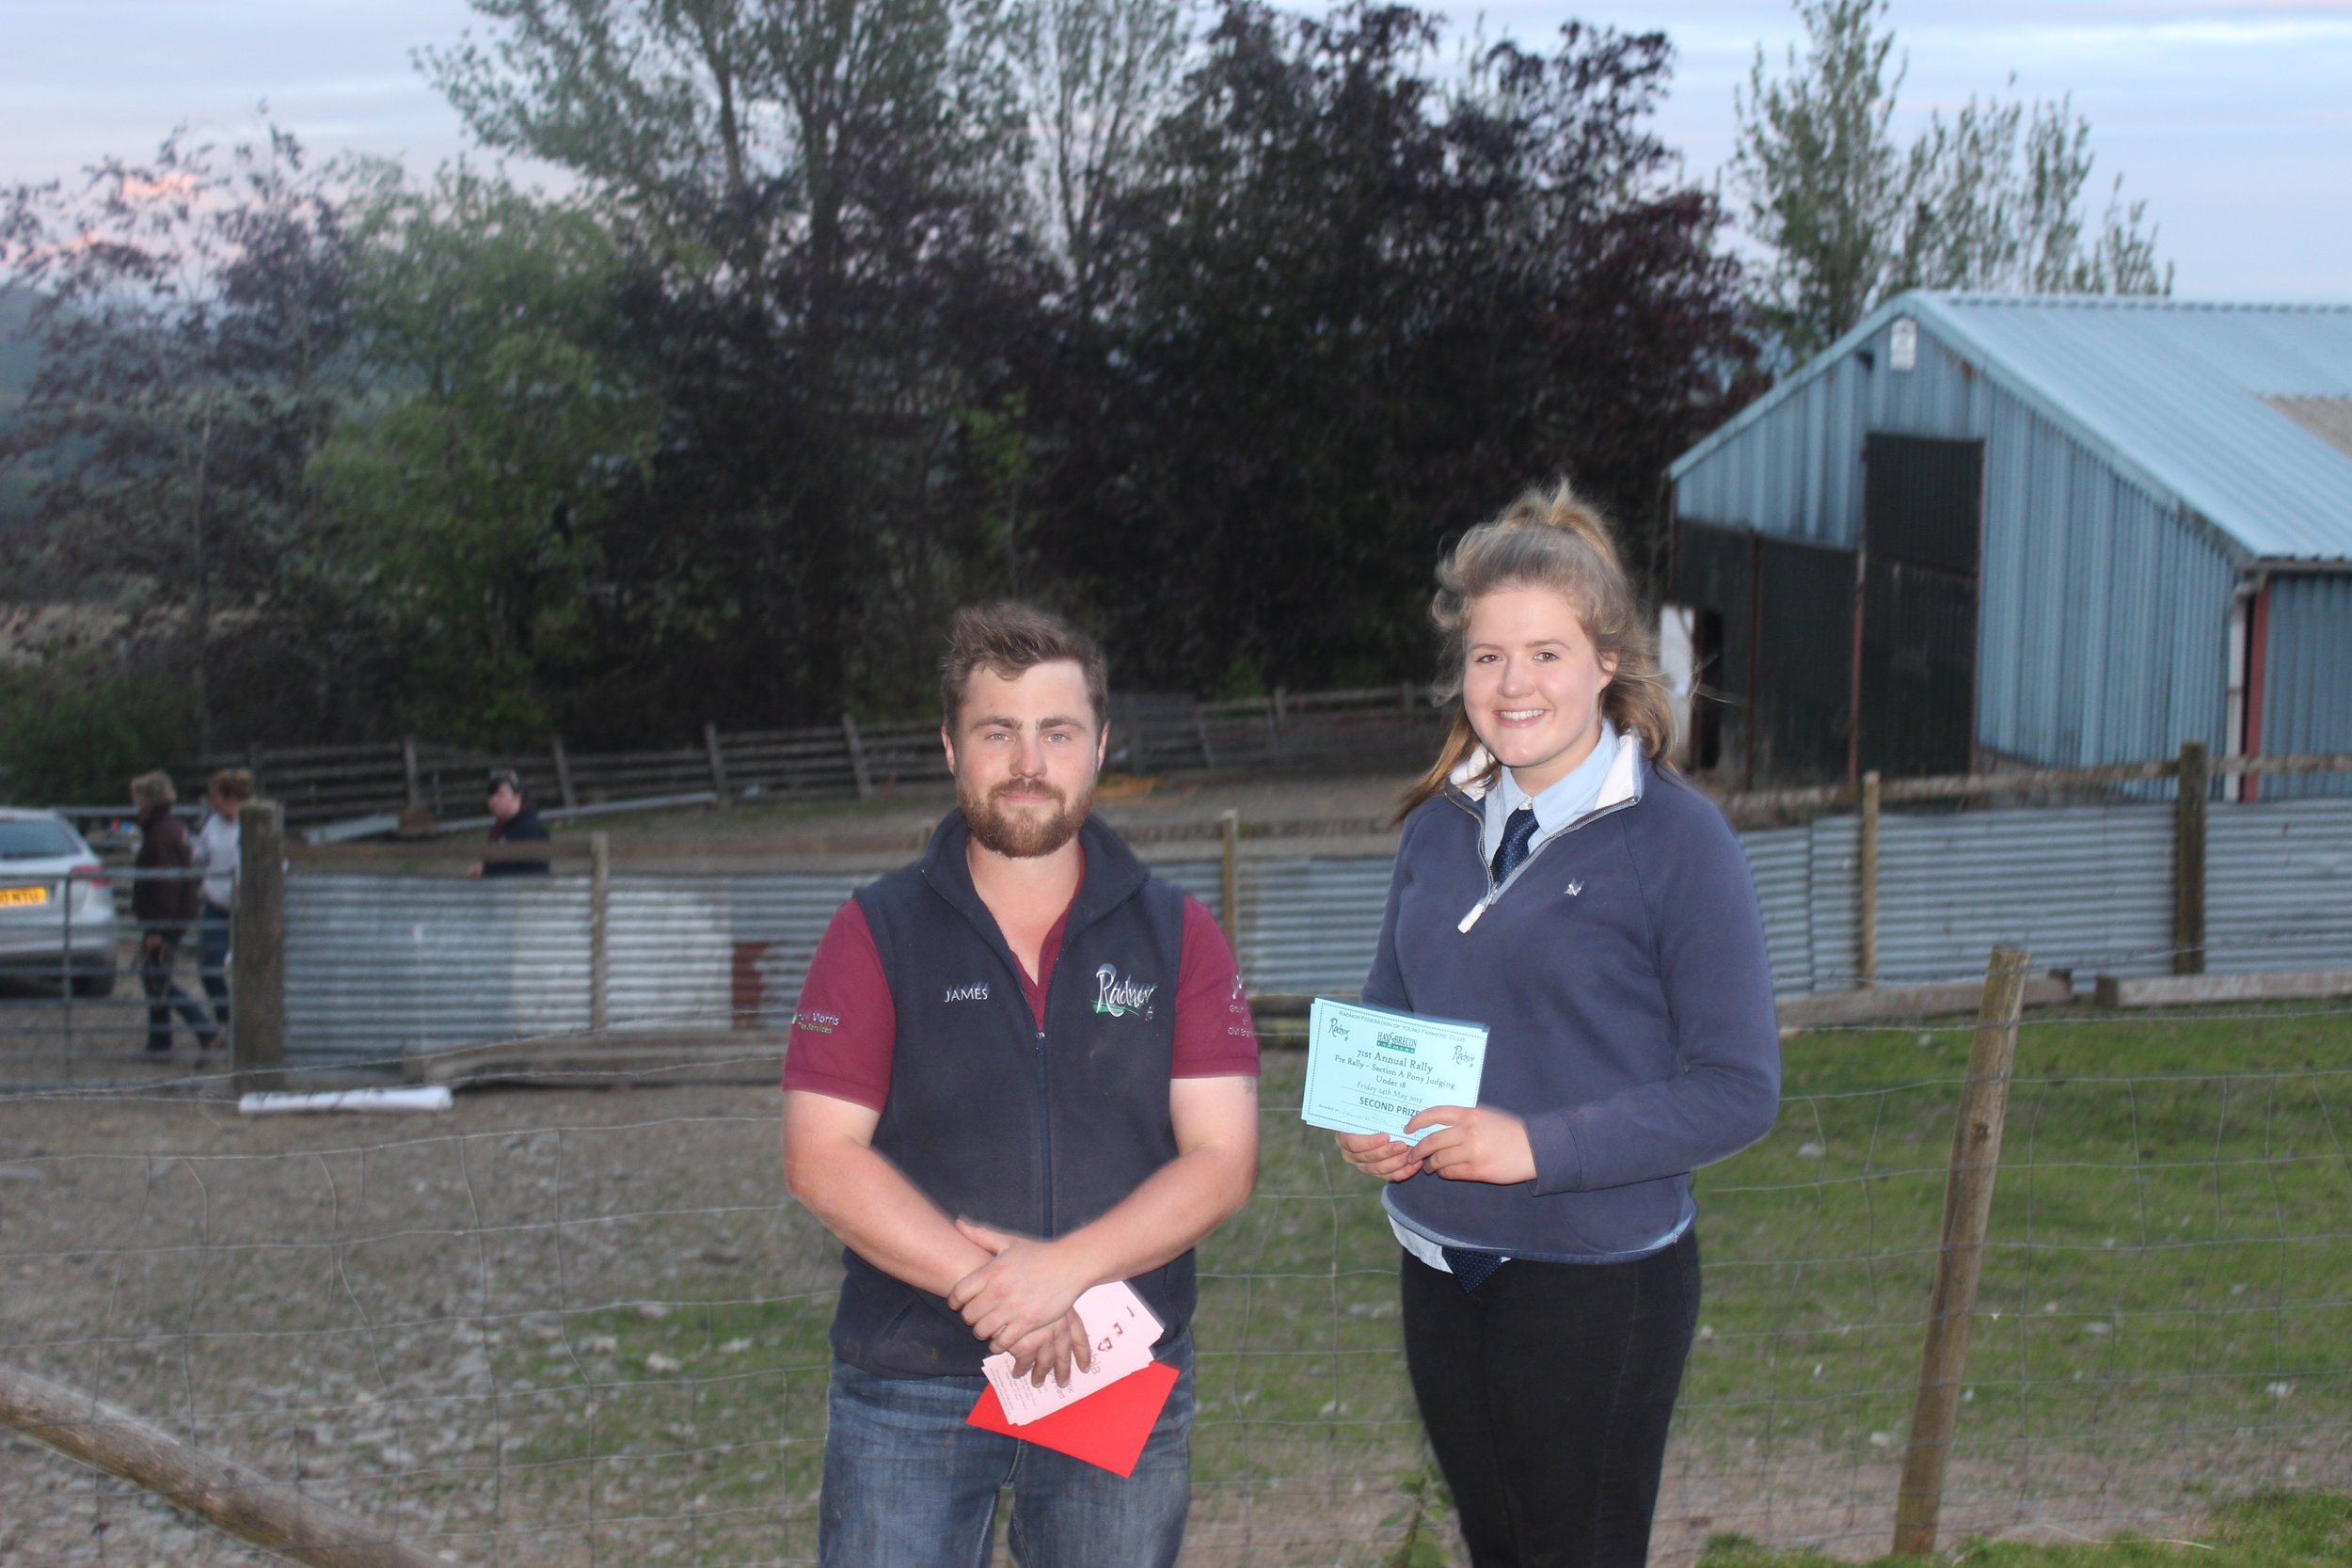 Gemma Price, Llanbadarn Fynydd YFC - 2nd place in the Under 18 Section A Stockjudging with County Chairman James Poulton.